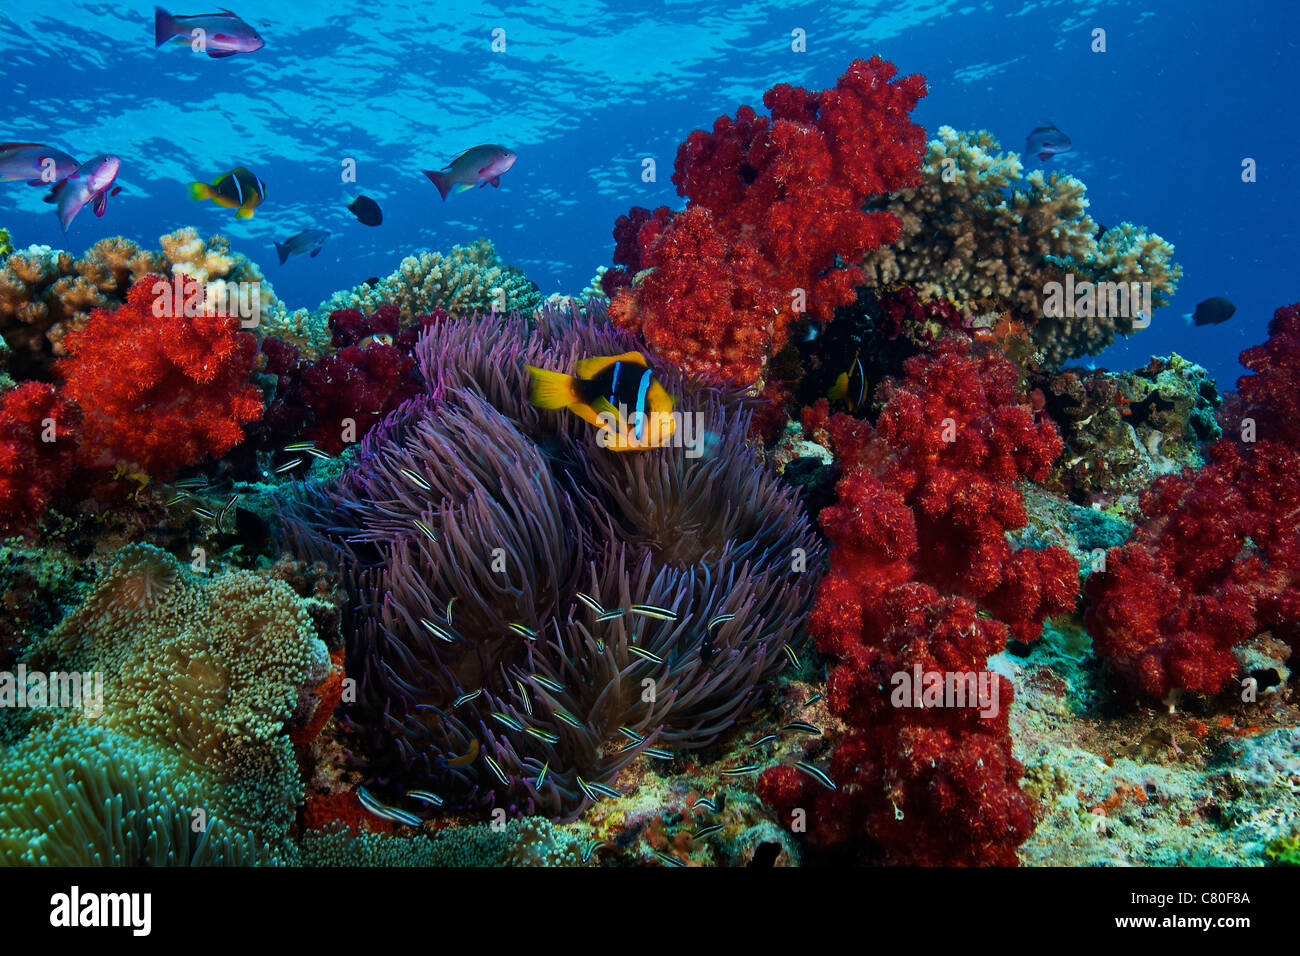 Coral Reef Fish Stock Photos & Coral Reef Fish Stock Images - Alamy